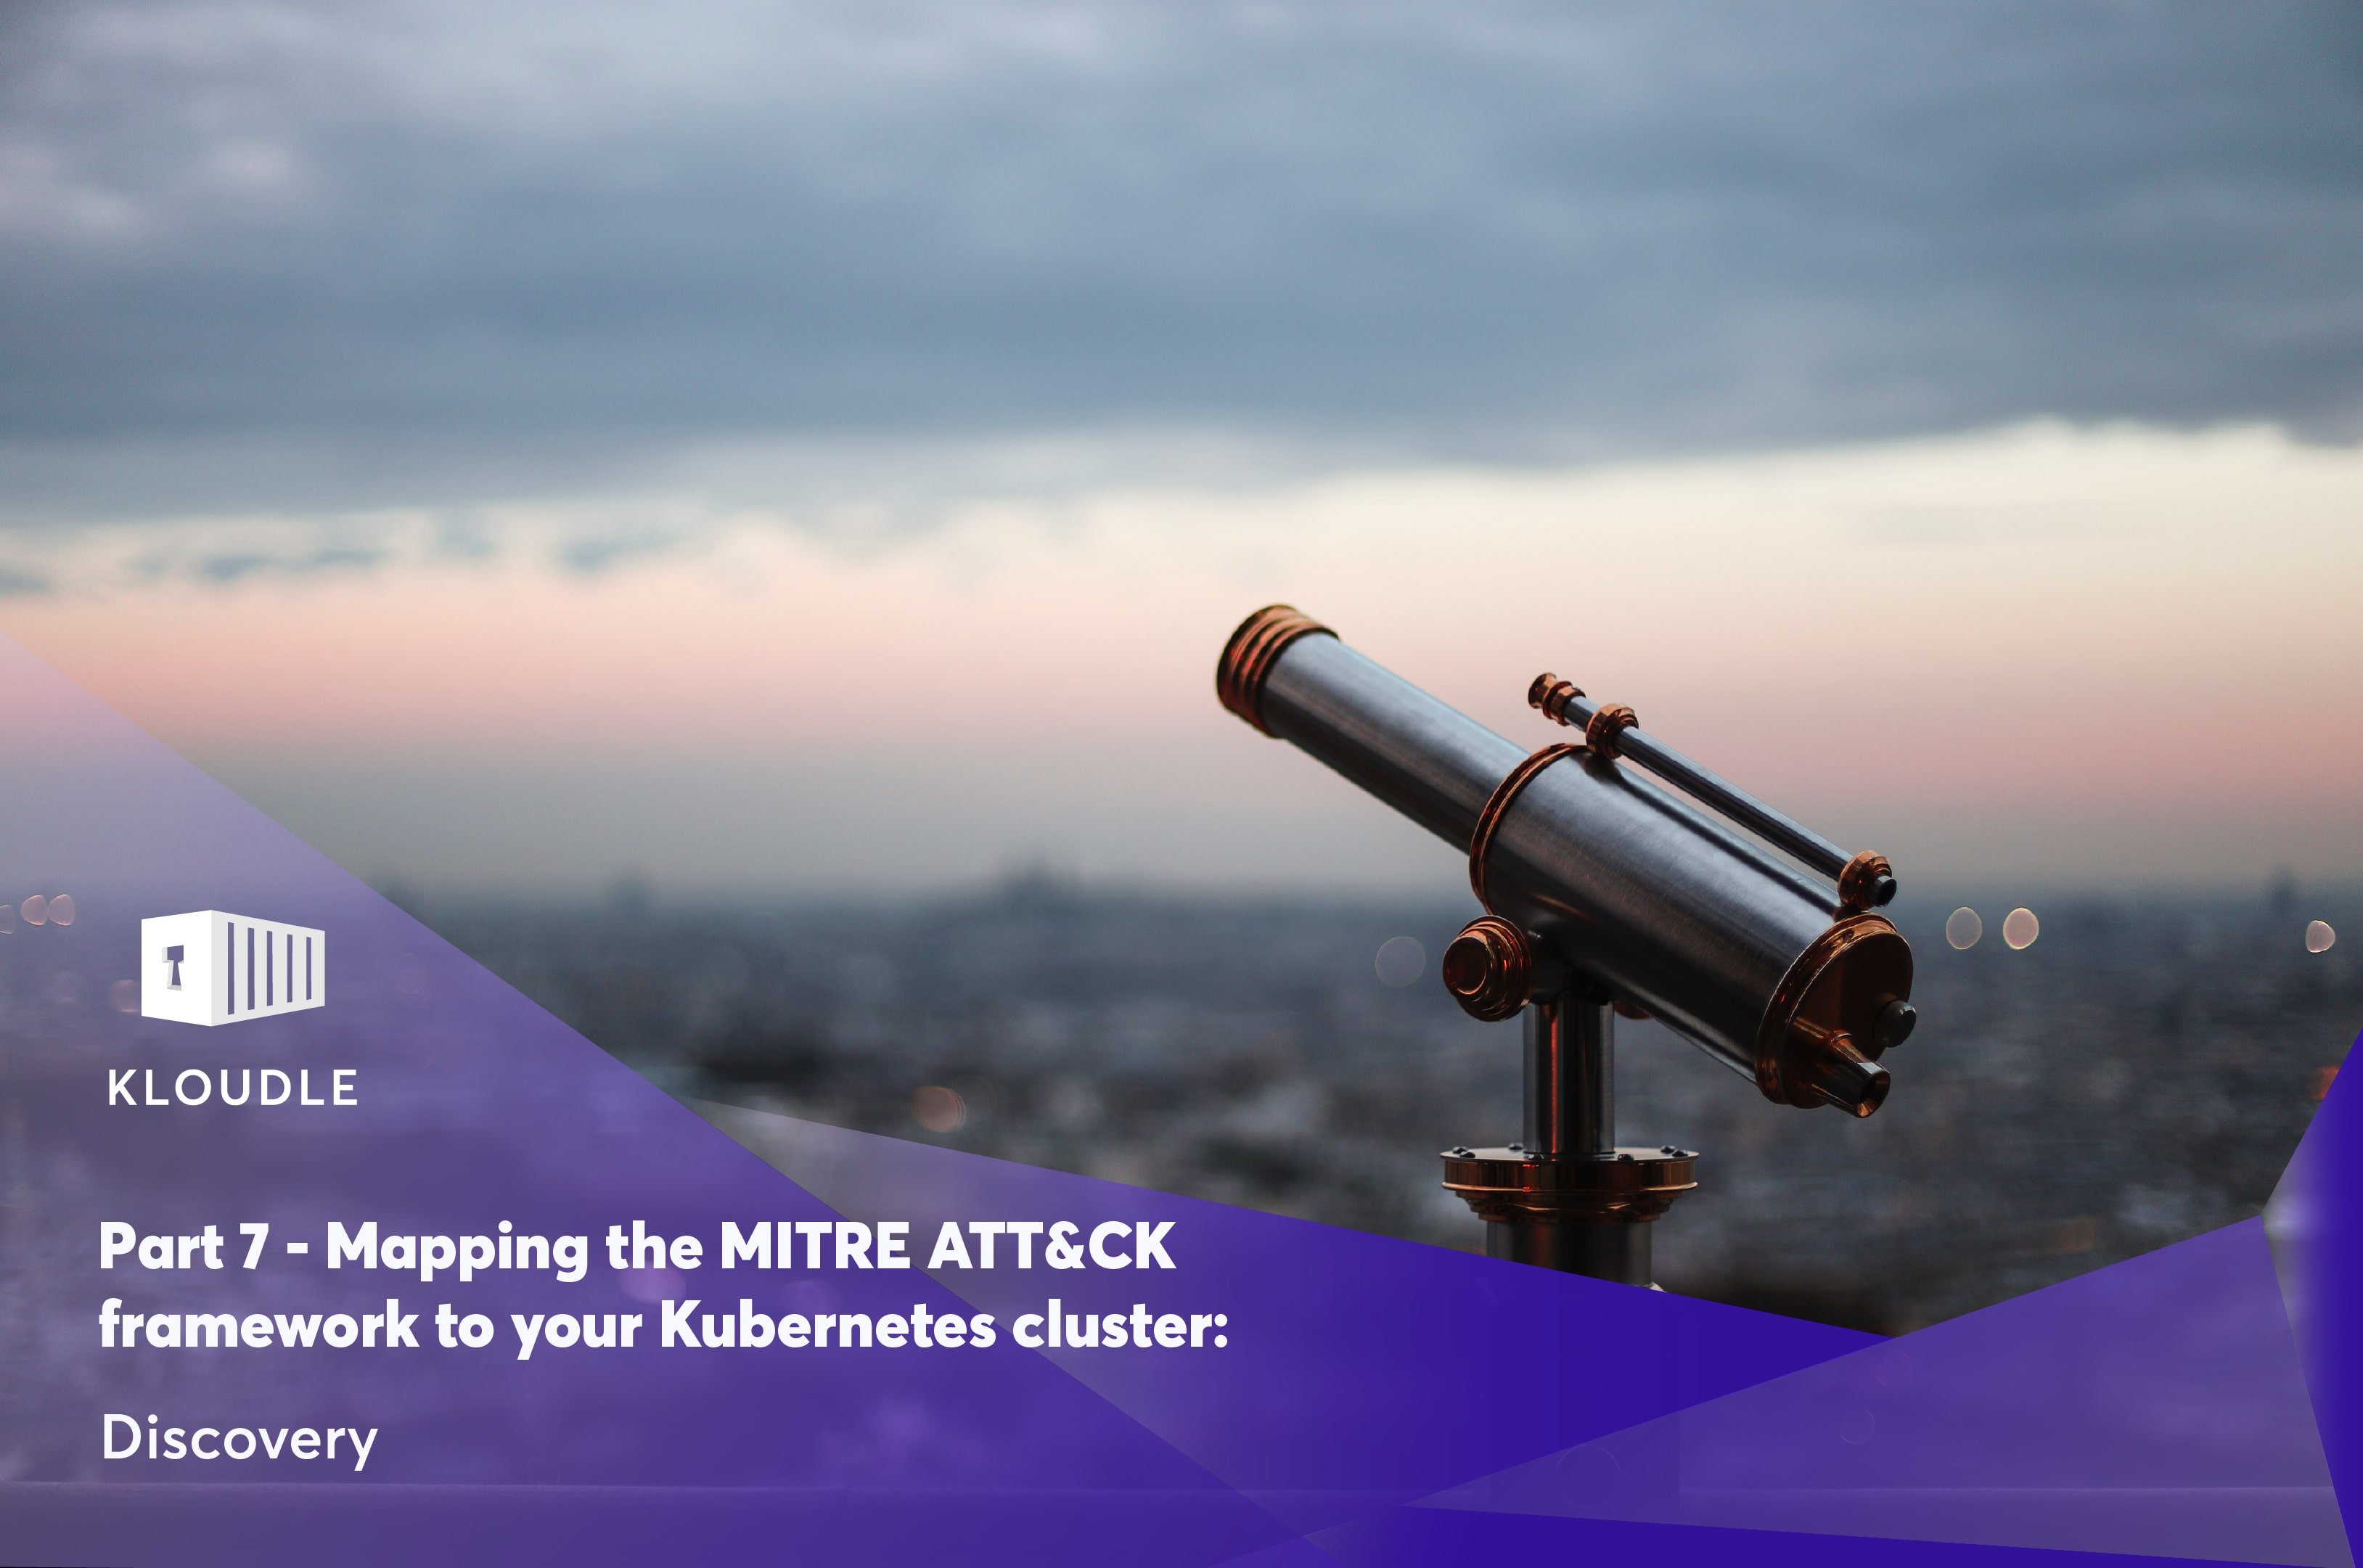 Part 7 - Mapping the MITRE ATT&CK framework to your Kubernetes cluster: Discovery